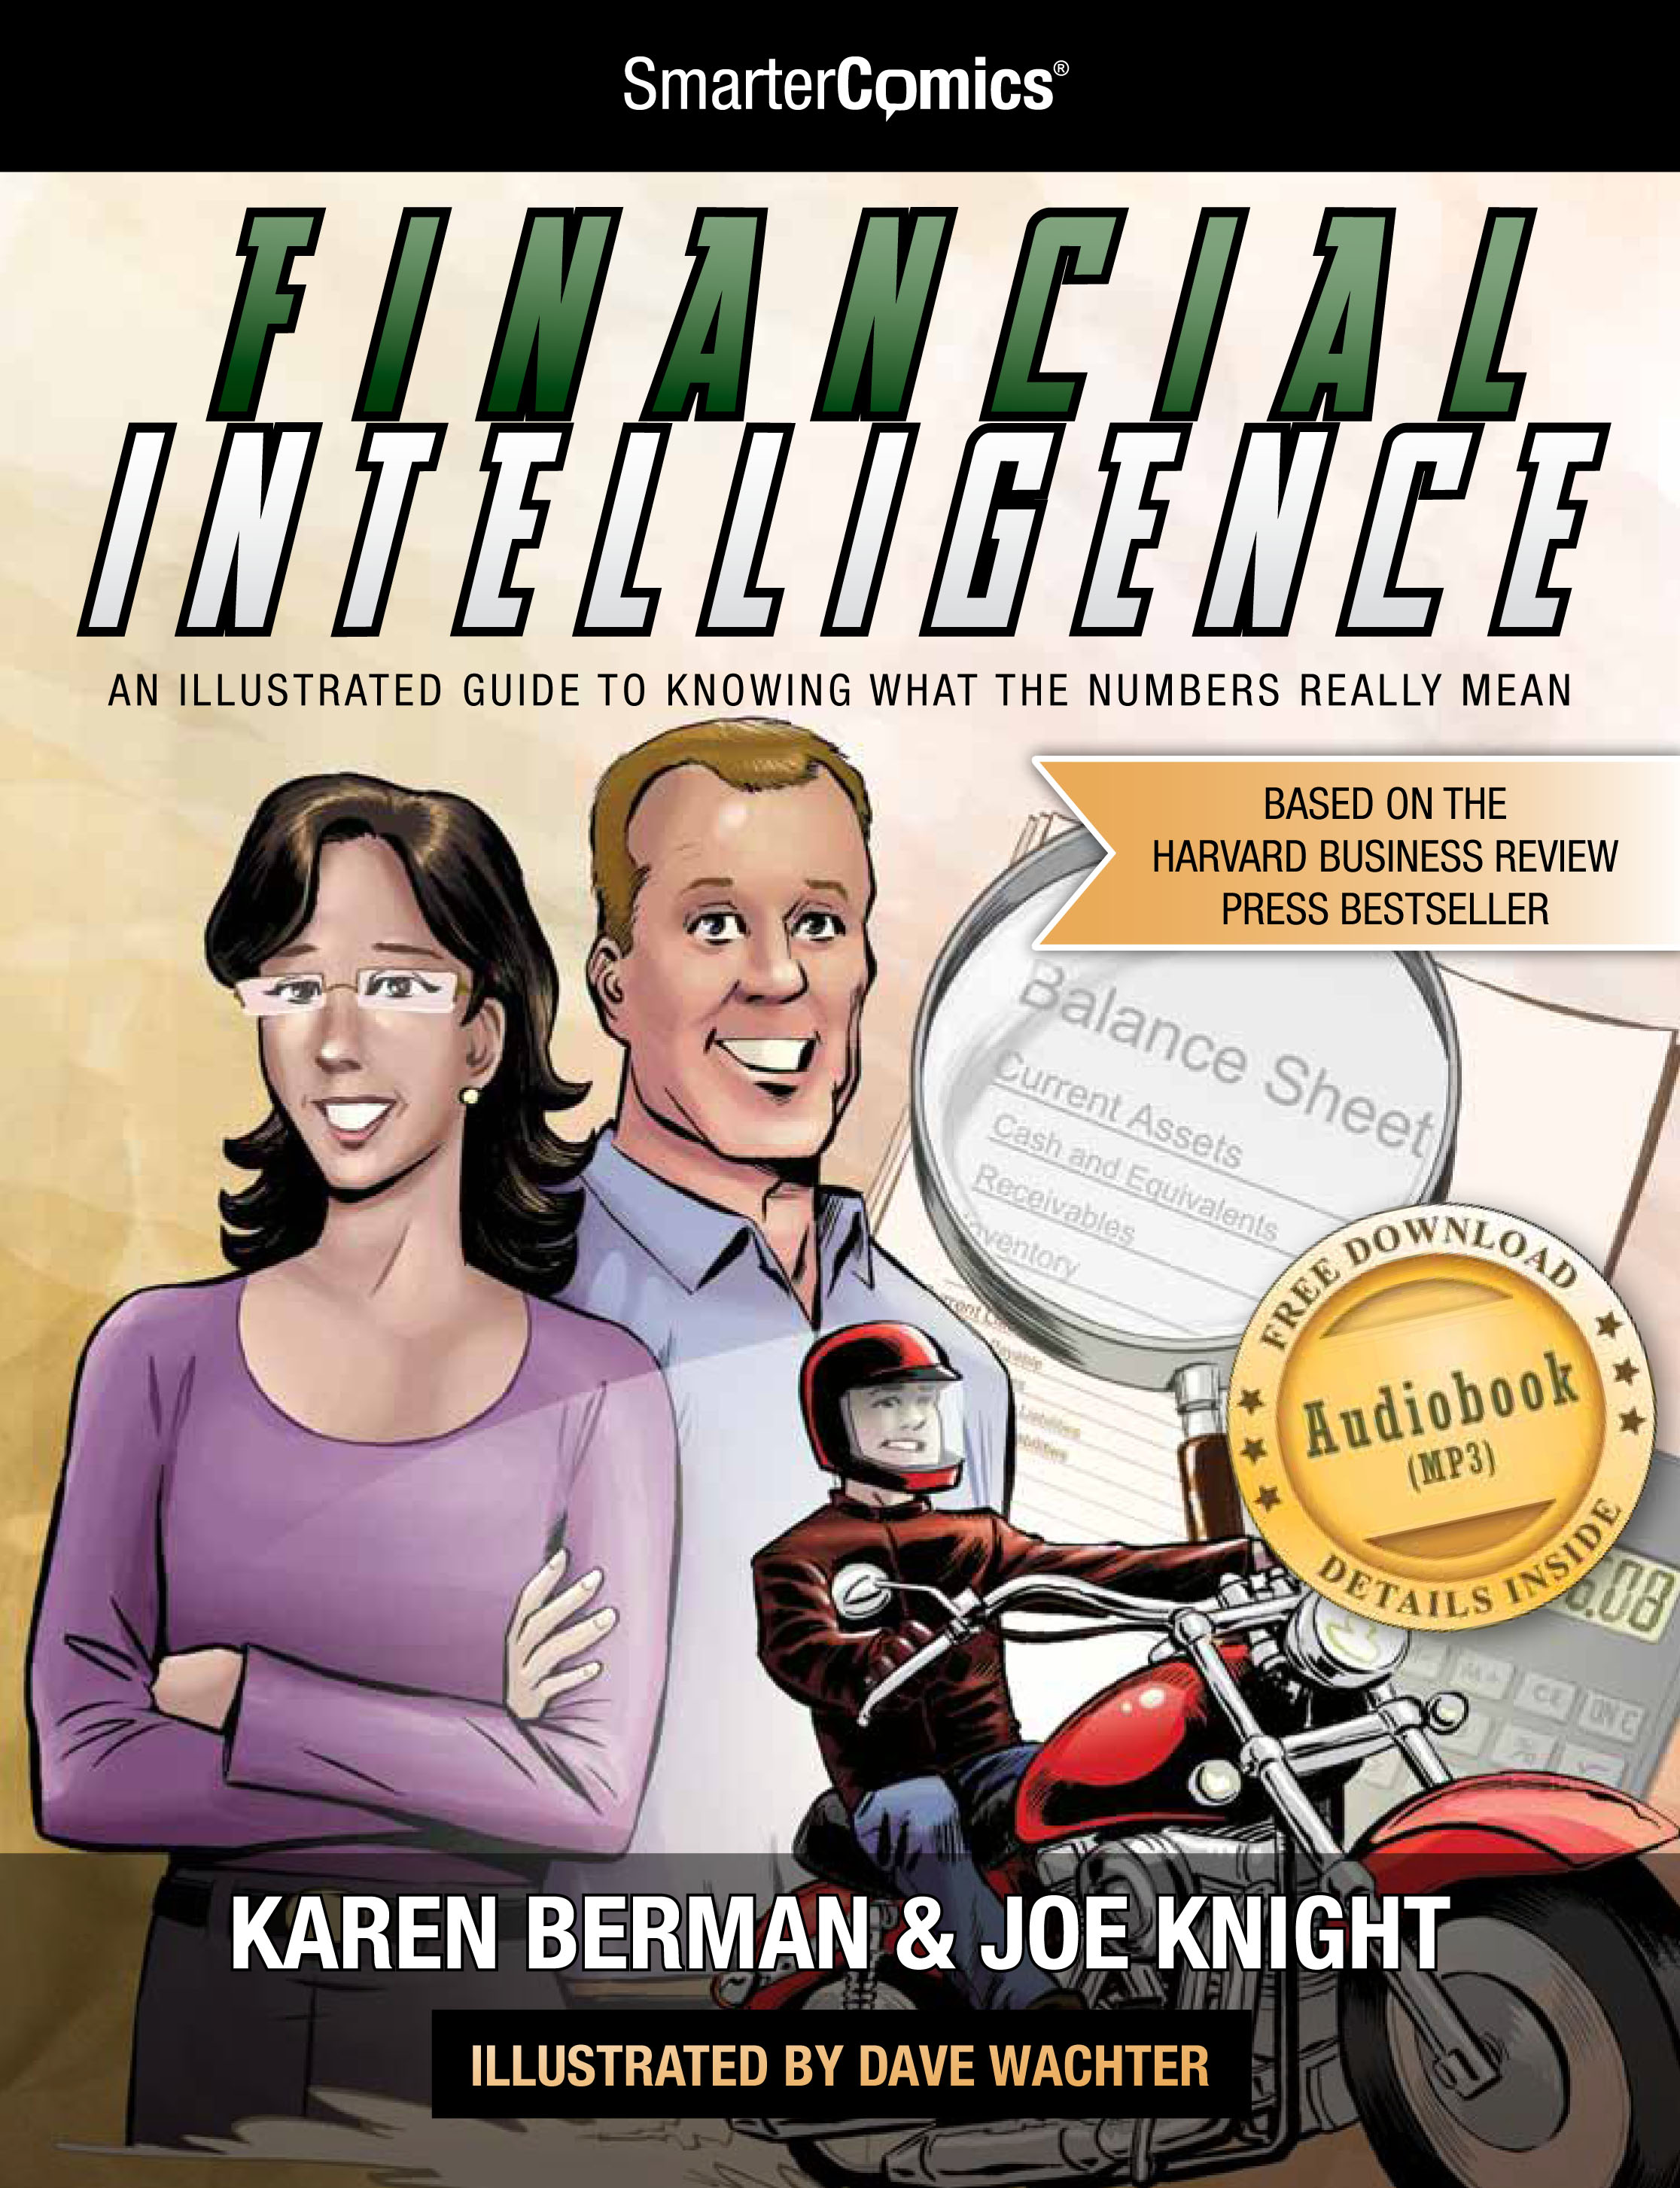 Find out more about the Financial Intelligence Comic book!